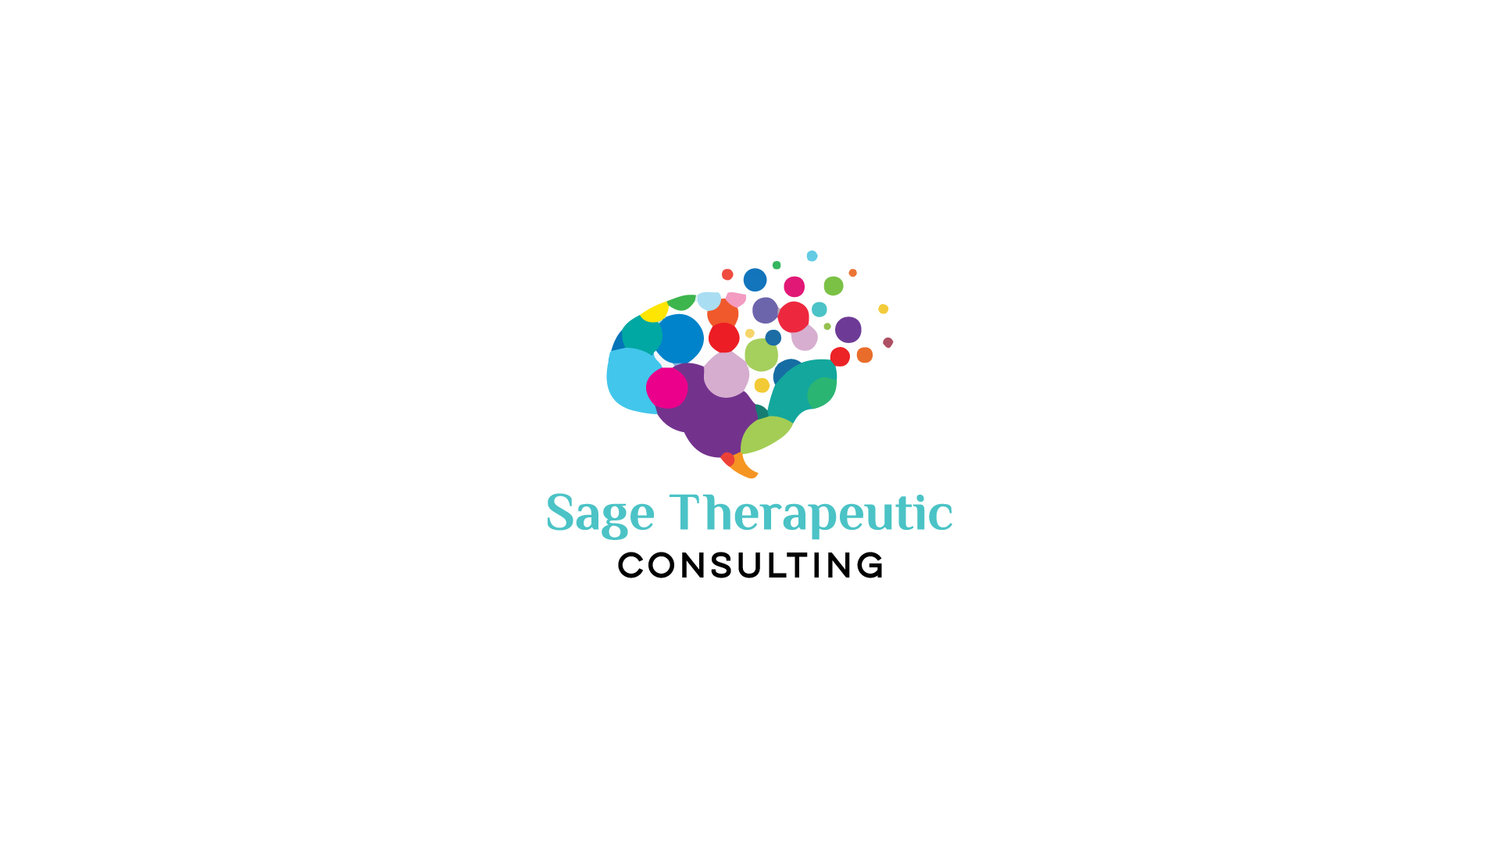 Sage Therepeutic Consulting